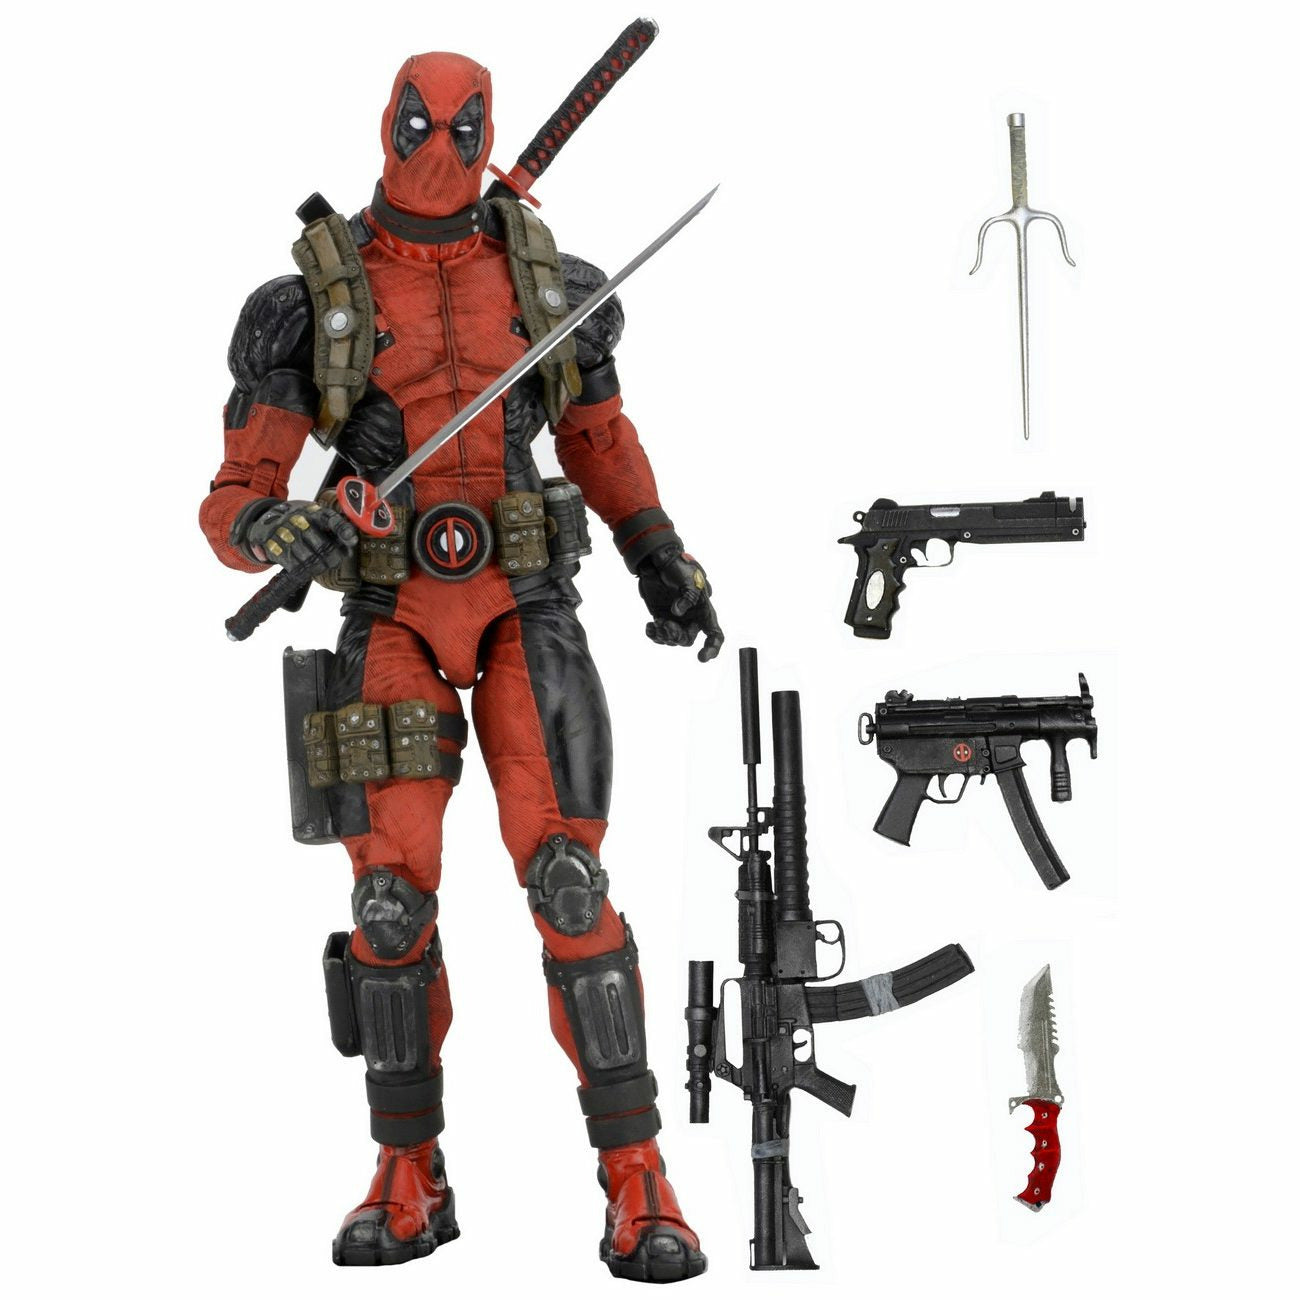 Marvel Deadpool Ultimate Collector's 1/4 Scale Epic Marvel Action Figure